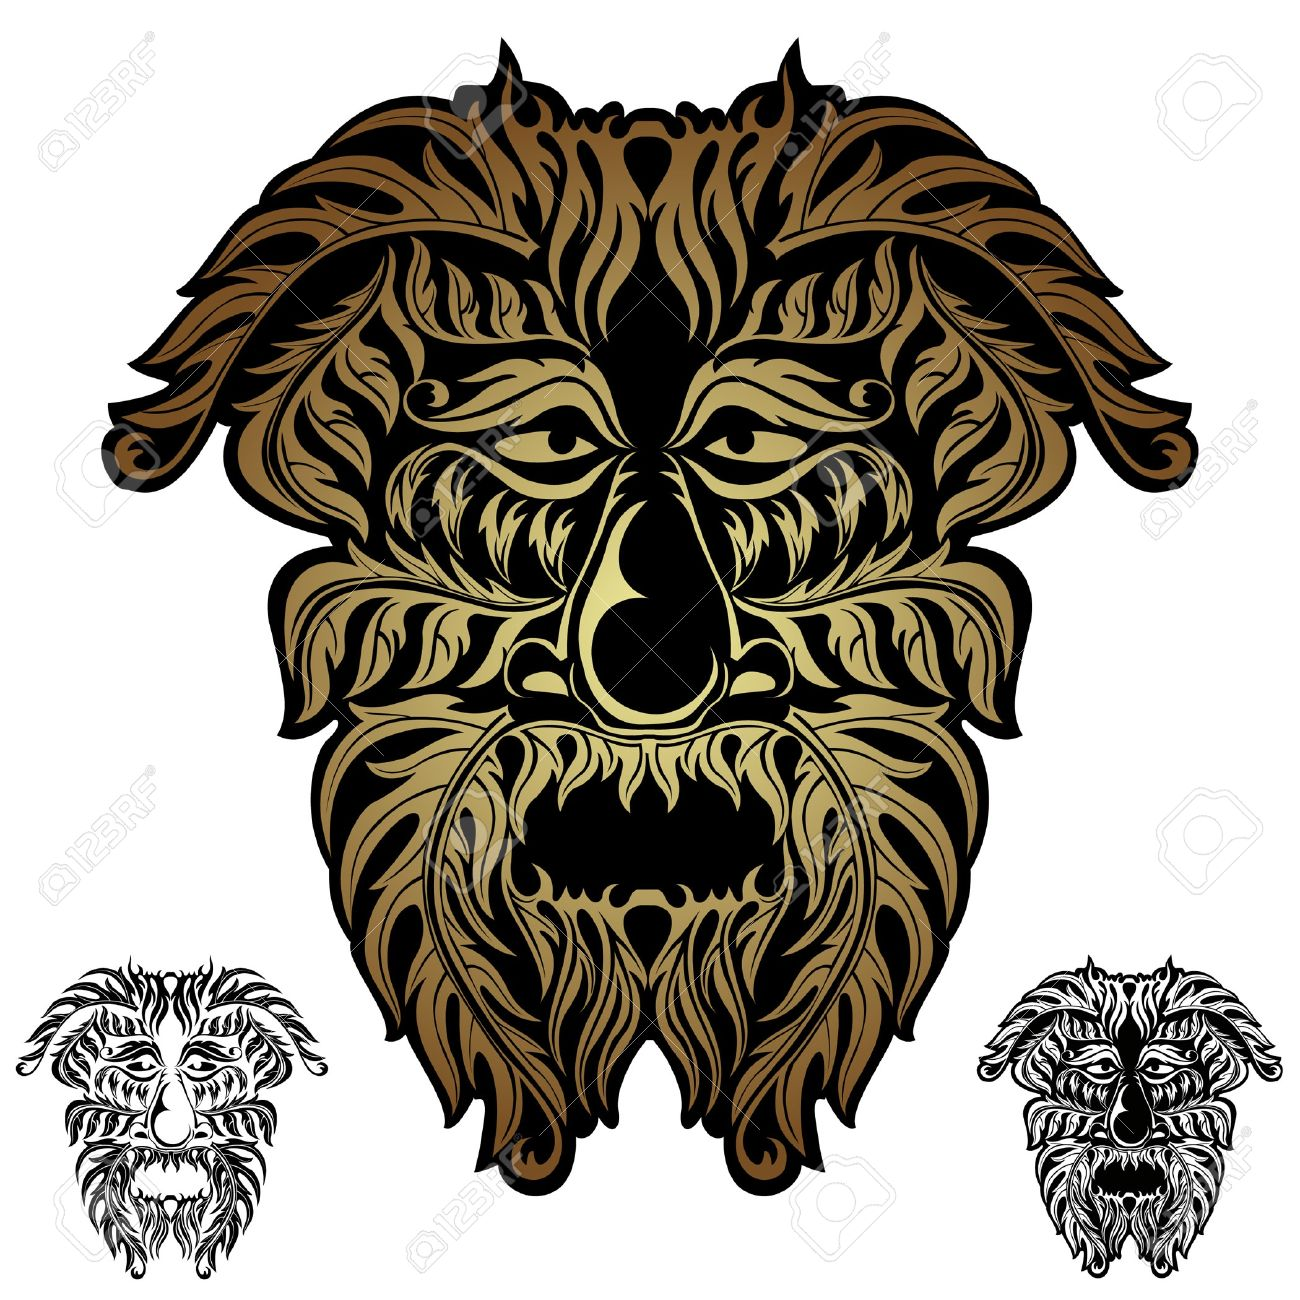 Forest Spirit Demon Face Tribal Royalty Free Cliparts, Vectors.